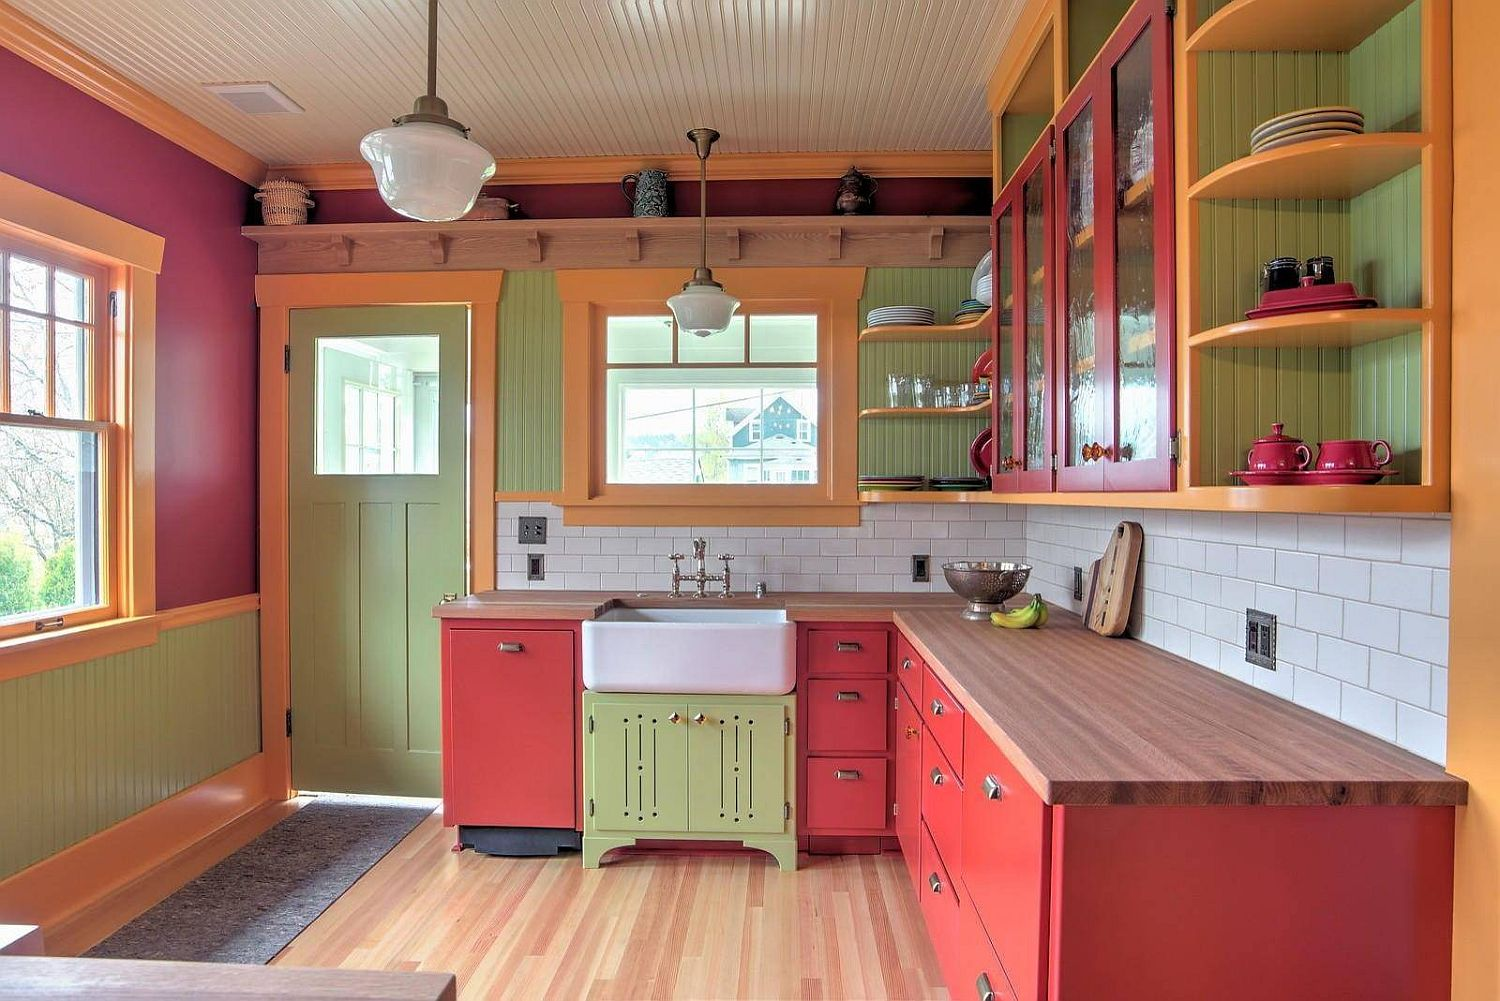 Innovative-and-eclectic-kitchen-in-red-green-and-orange